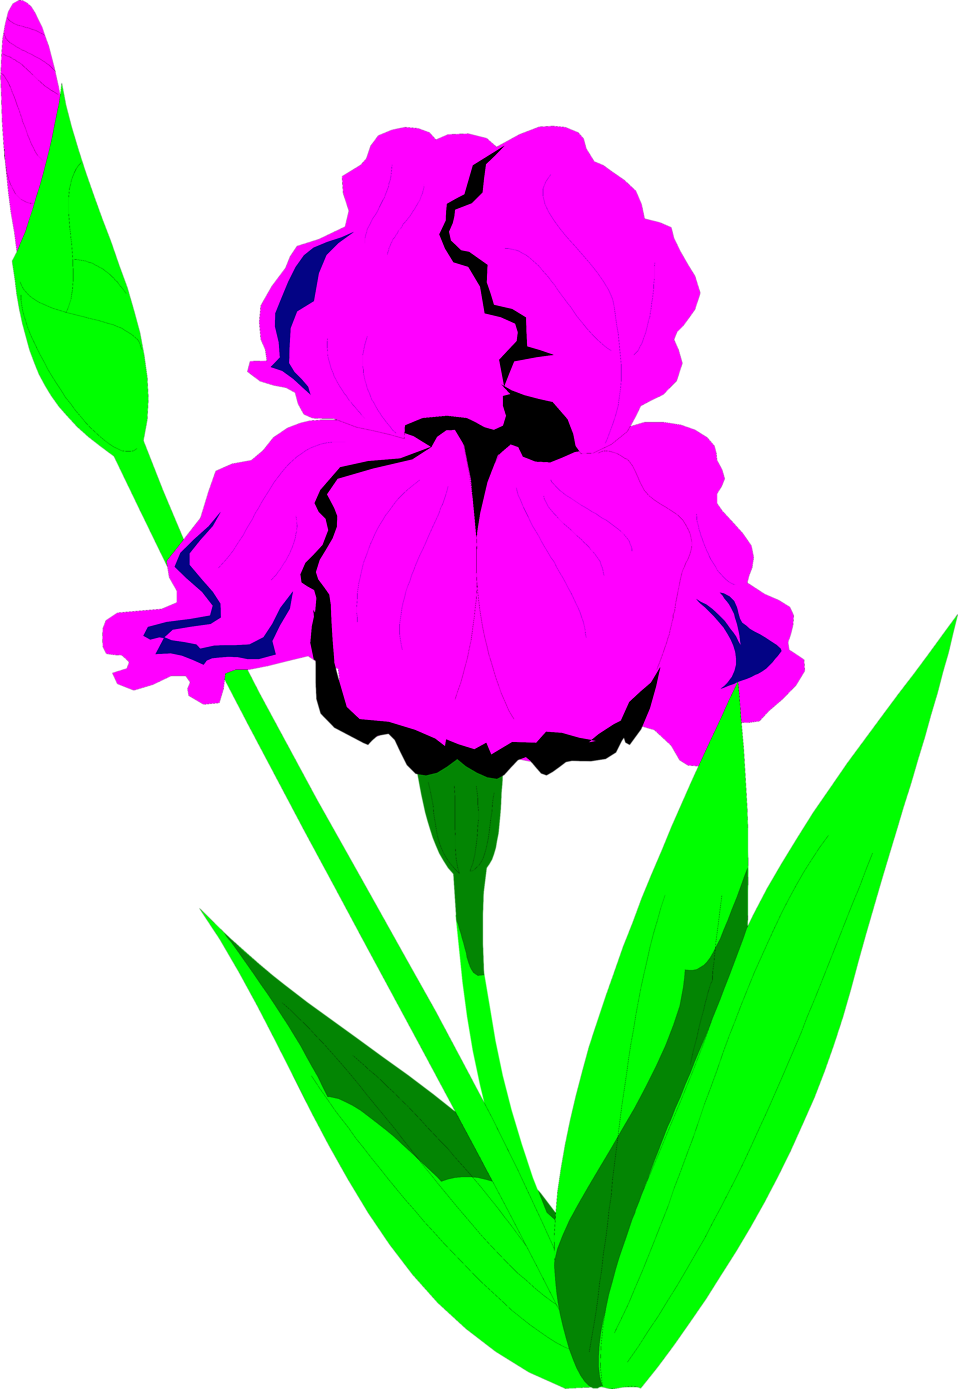 958x1389 Iris Free Stock Photo Illustration Of A Purple Iris Flower